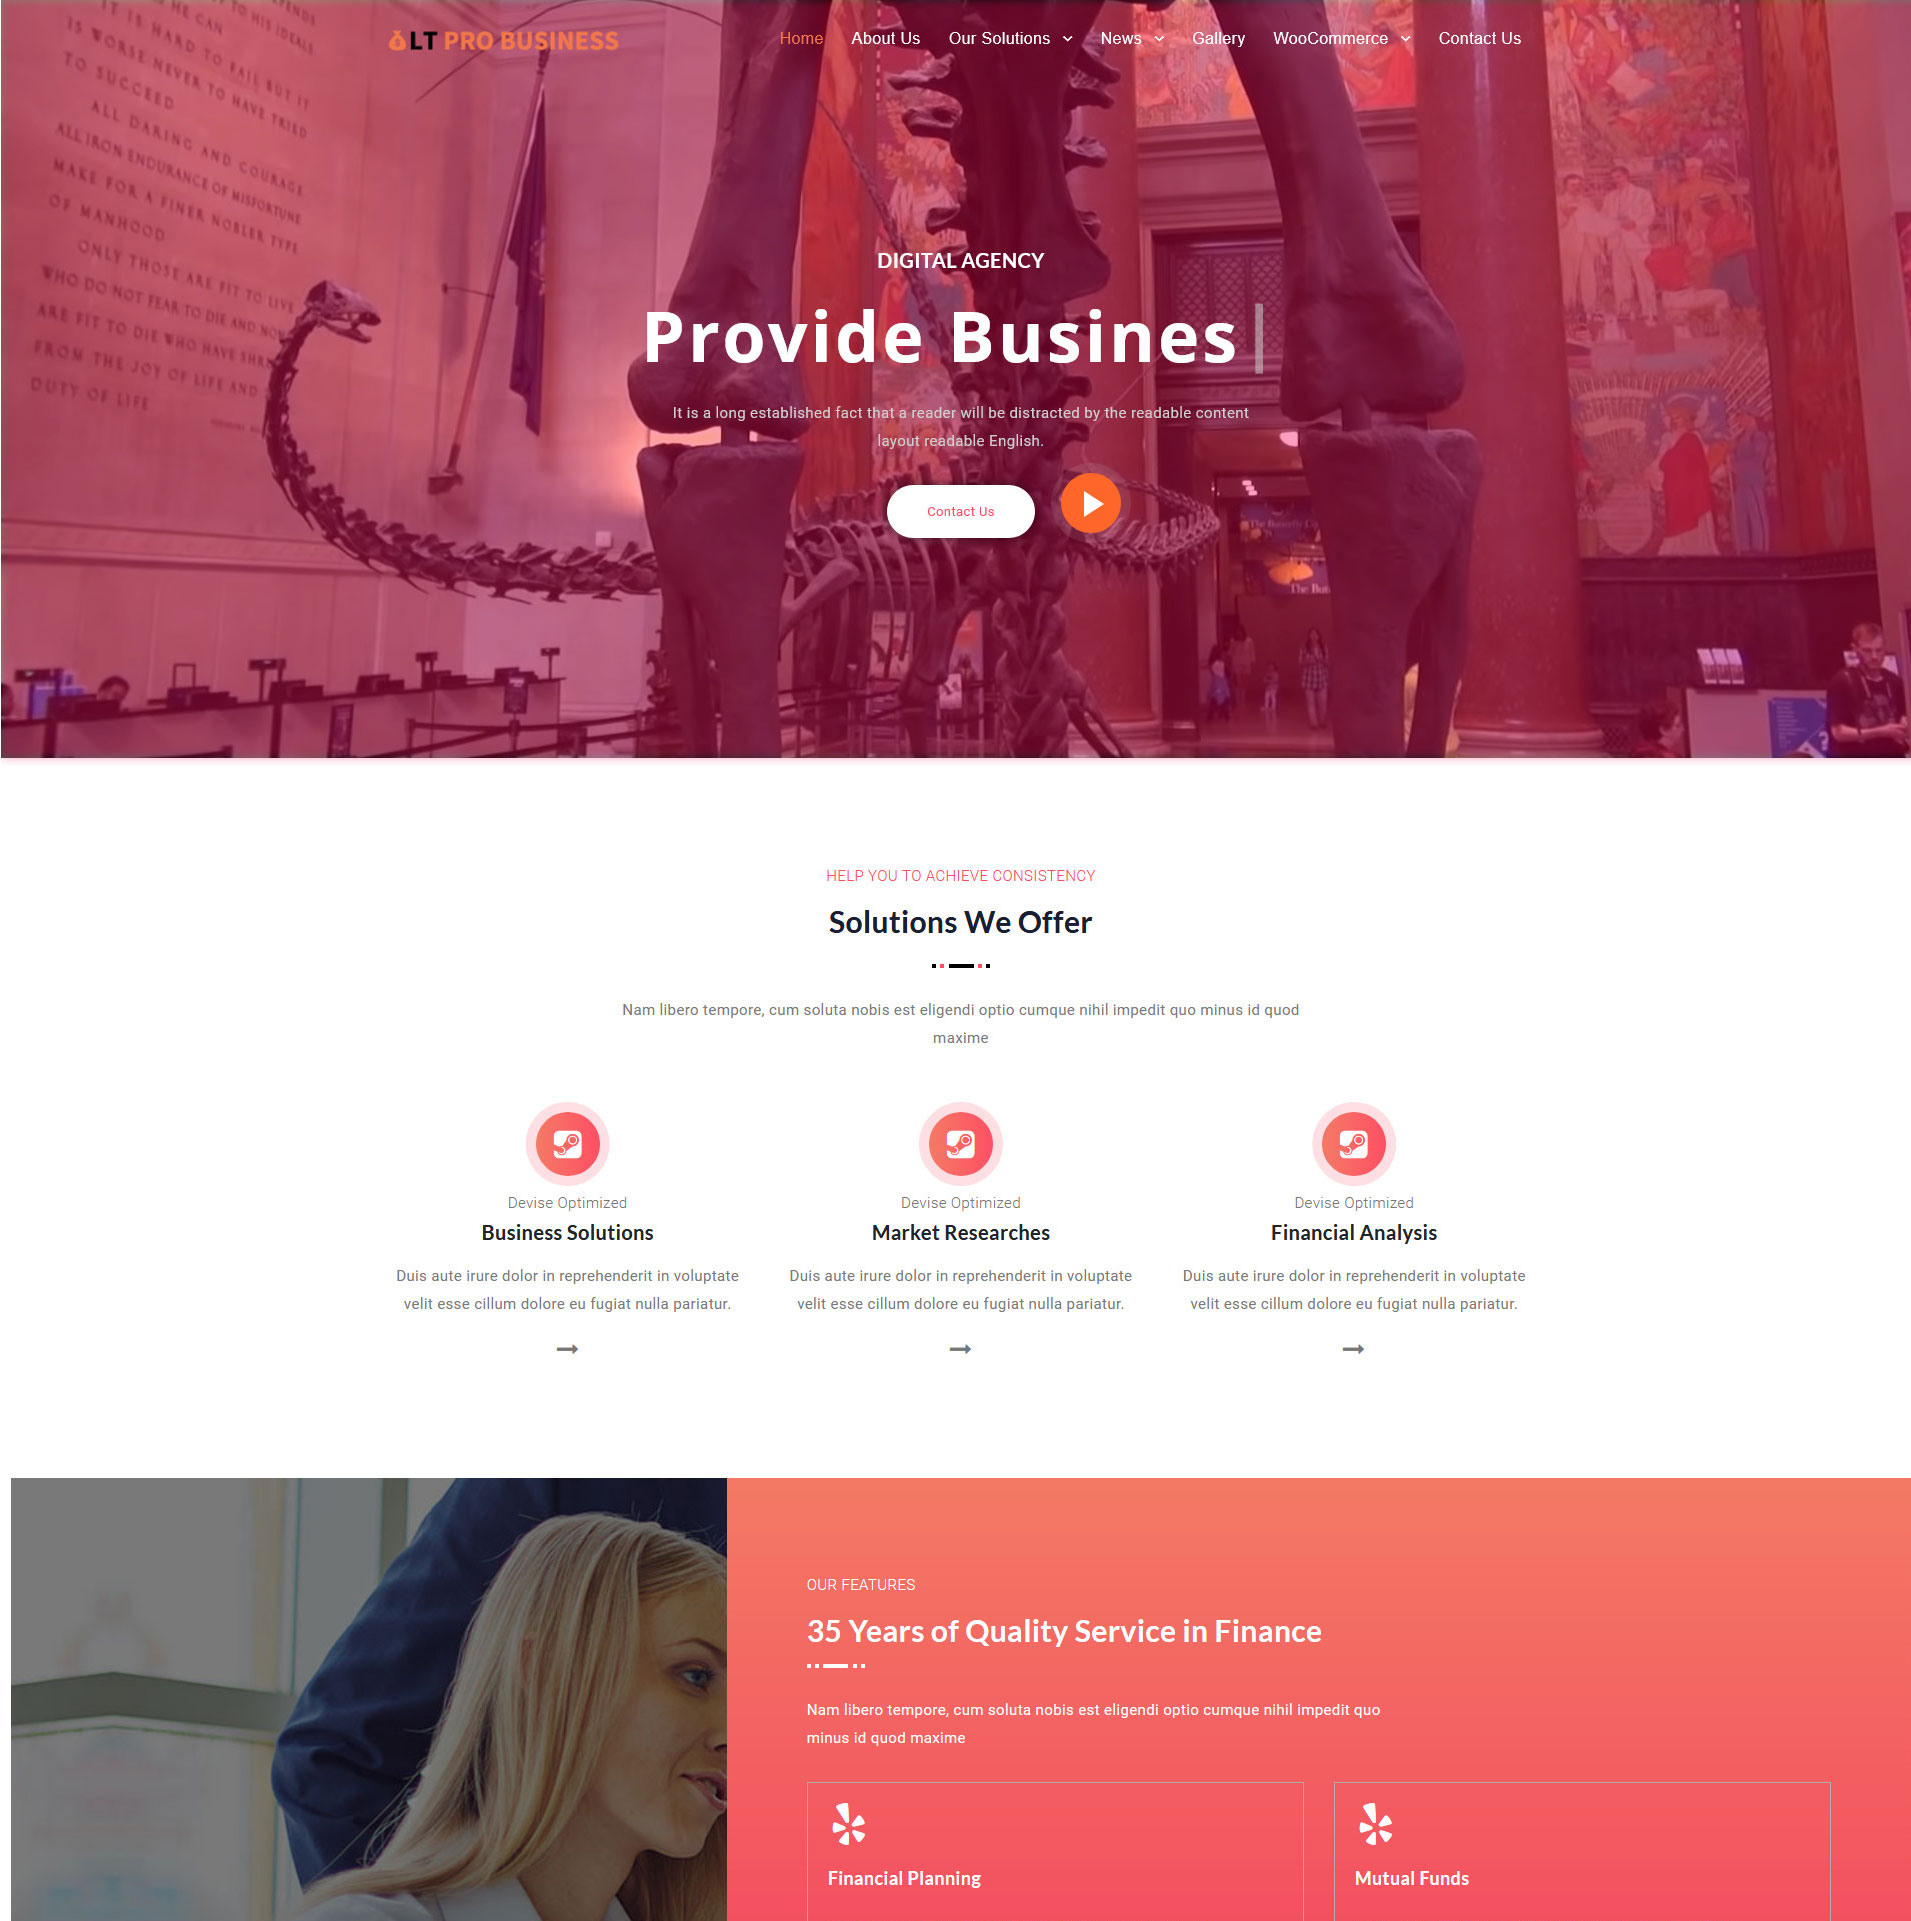 lt-pro-business-free-responsive-wordpress-theme-screenshot